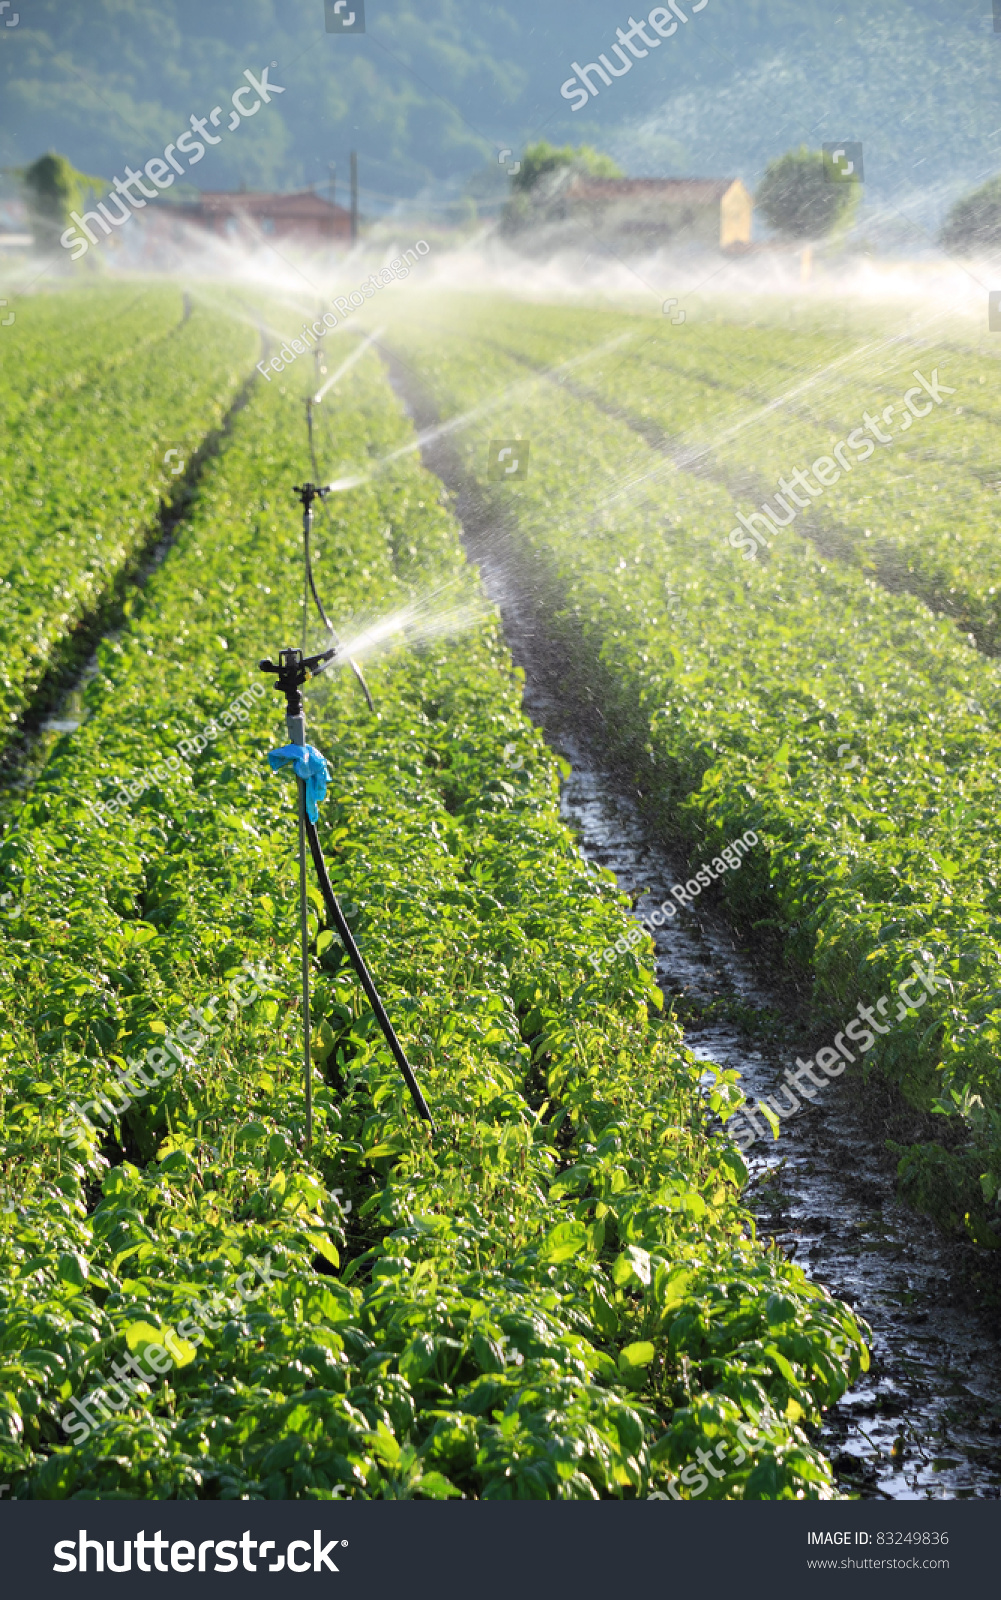 Irrigation System On Large Farm Field Stock Photo 83249836